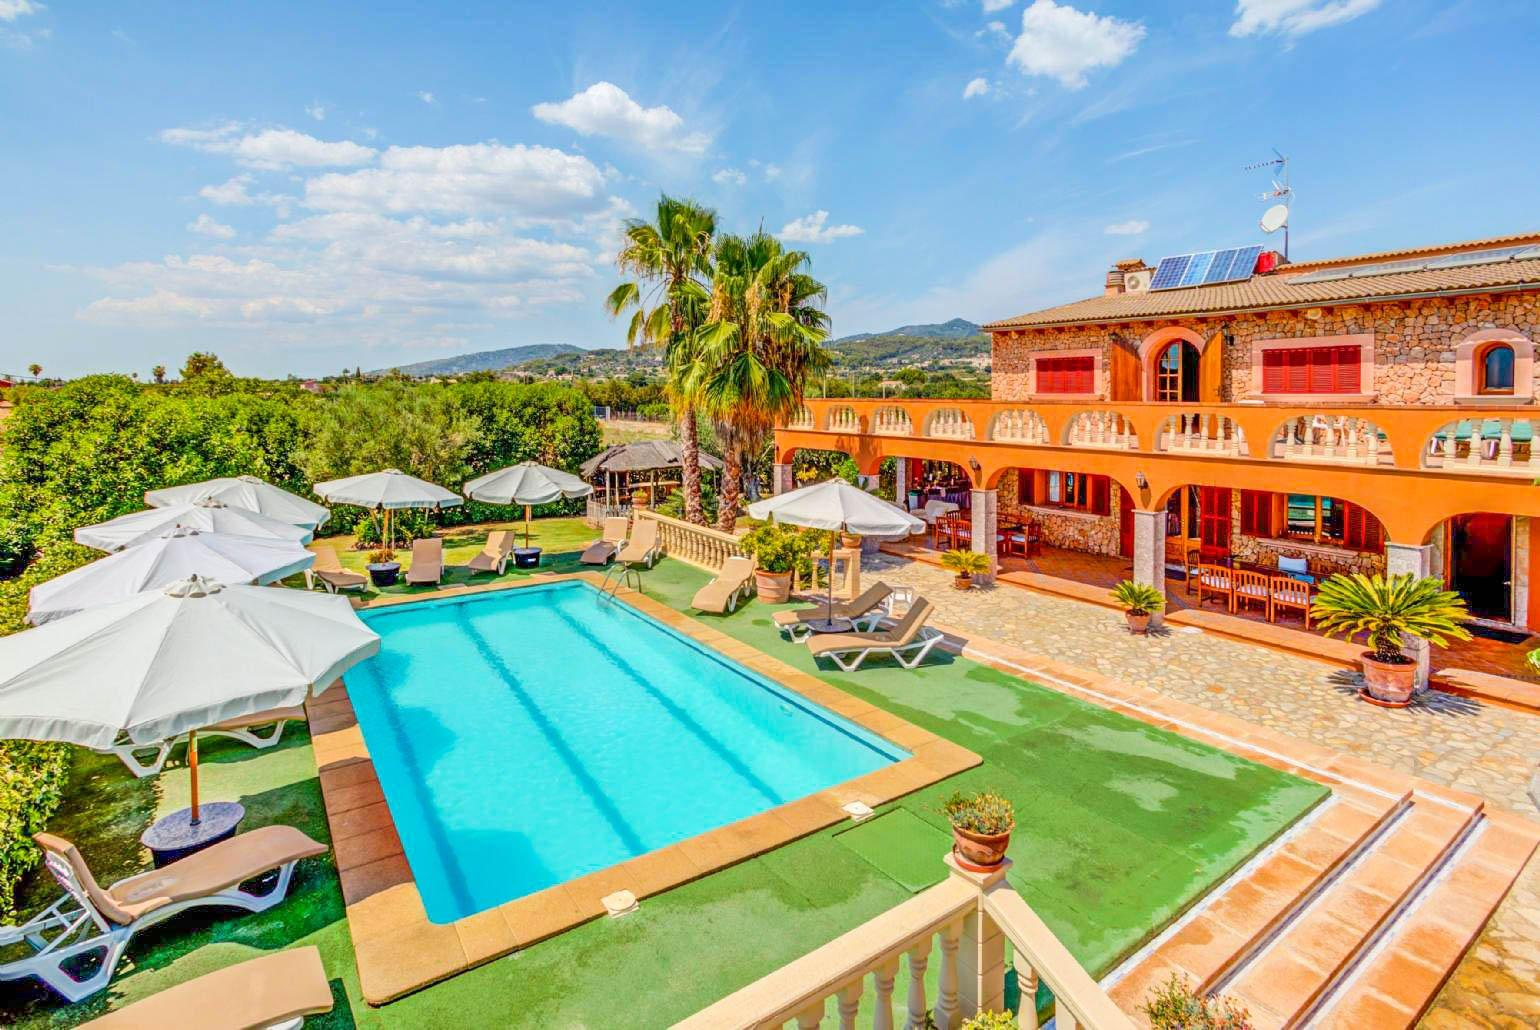 Ferienhaus Mit Pool Zakynthos Ses Porrasses Mallorca Selva Mallorca Villas To Rent With